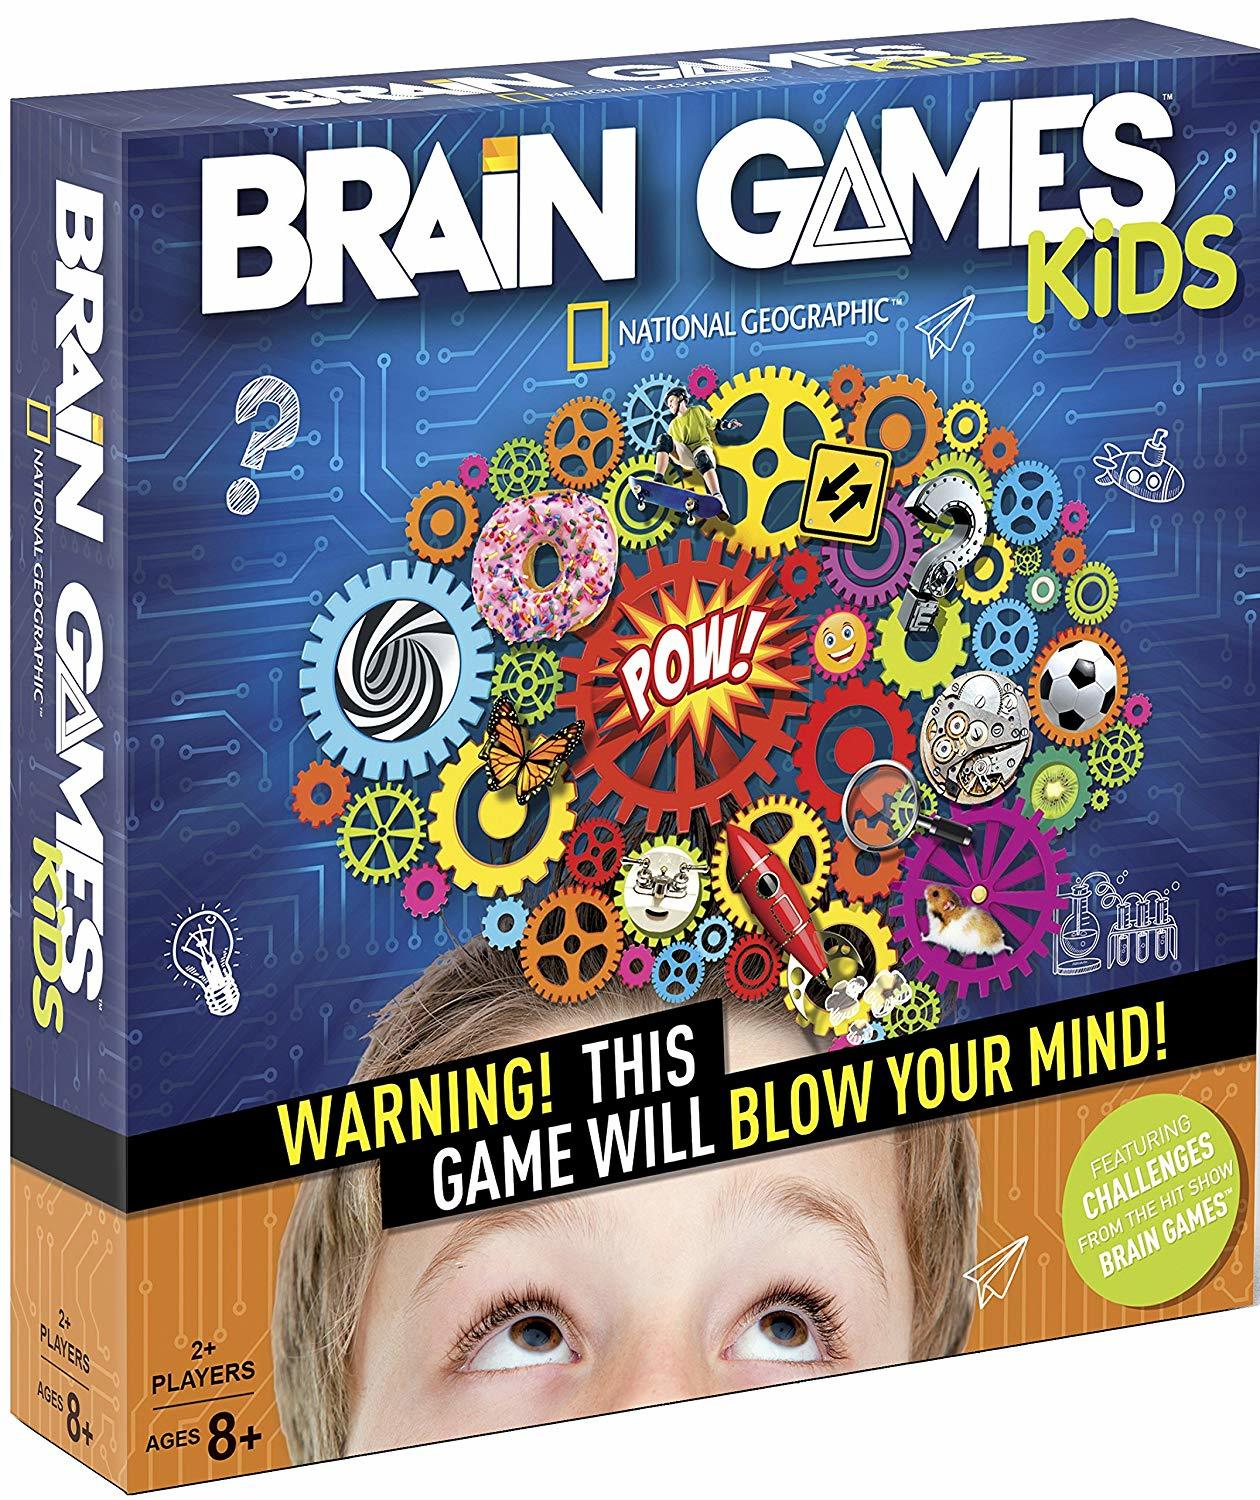 BRAIN GAMES KIDS Review